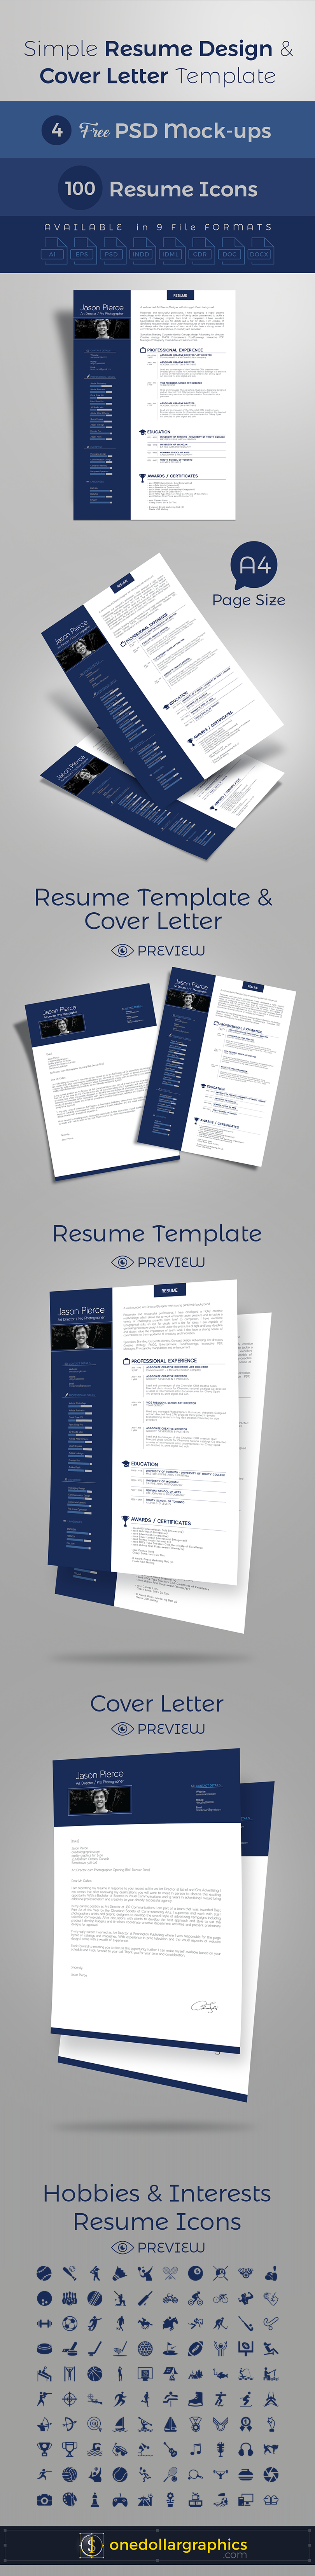 resume-design-cover-letter-templates-icons-5